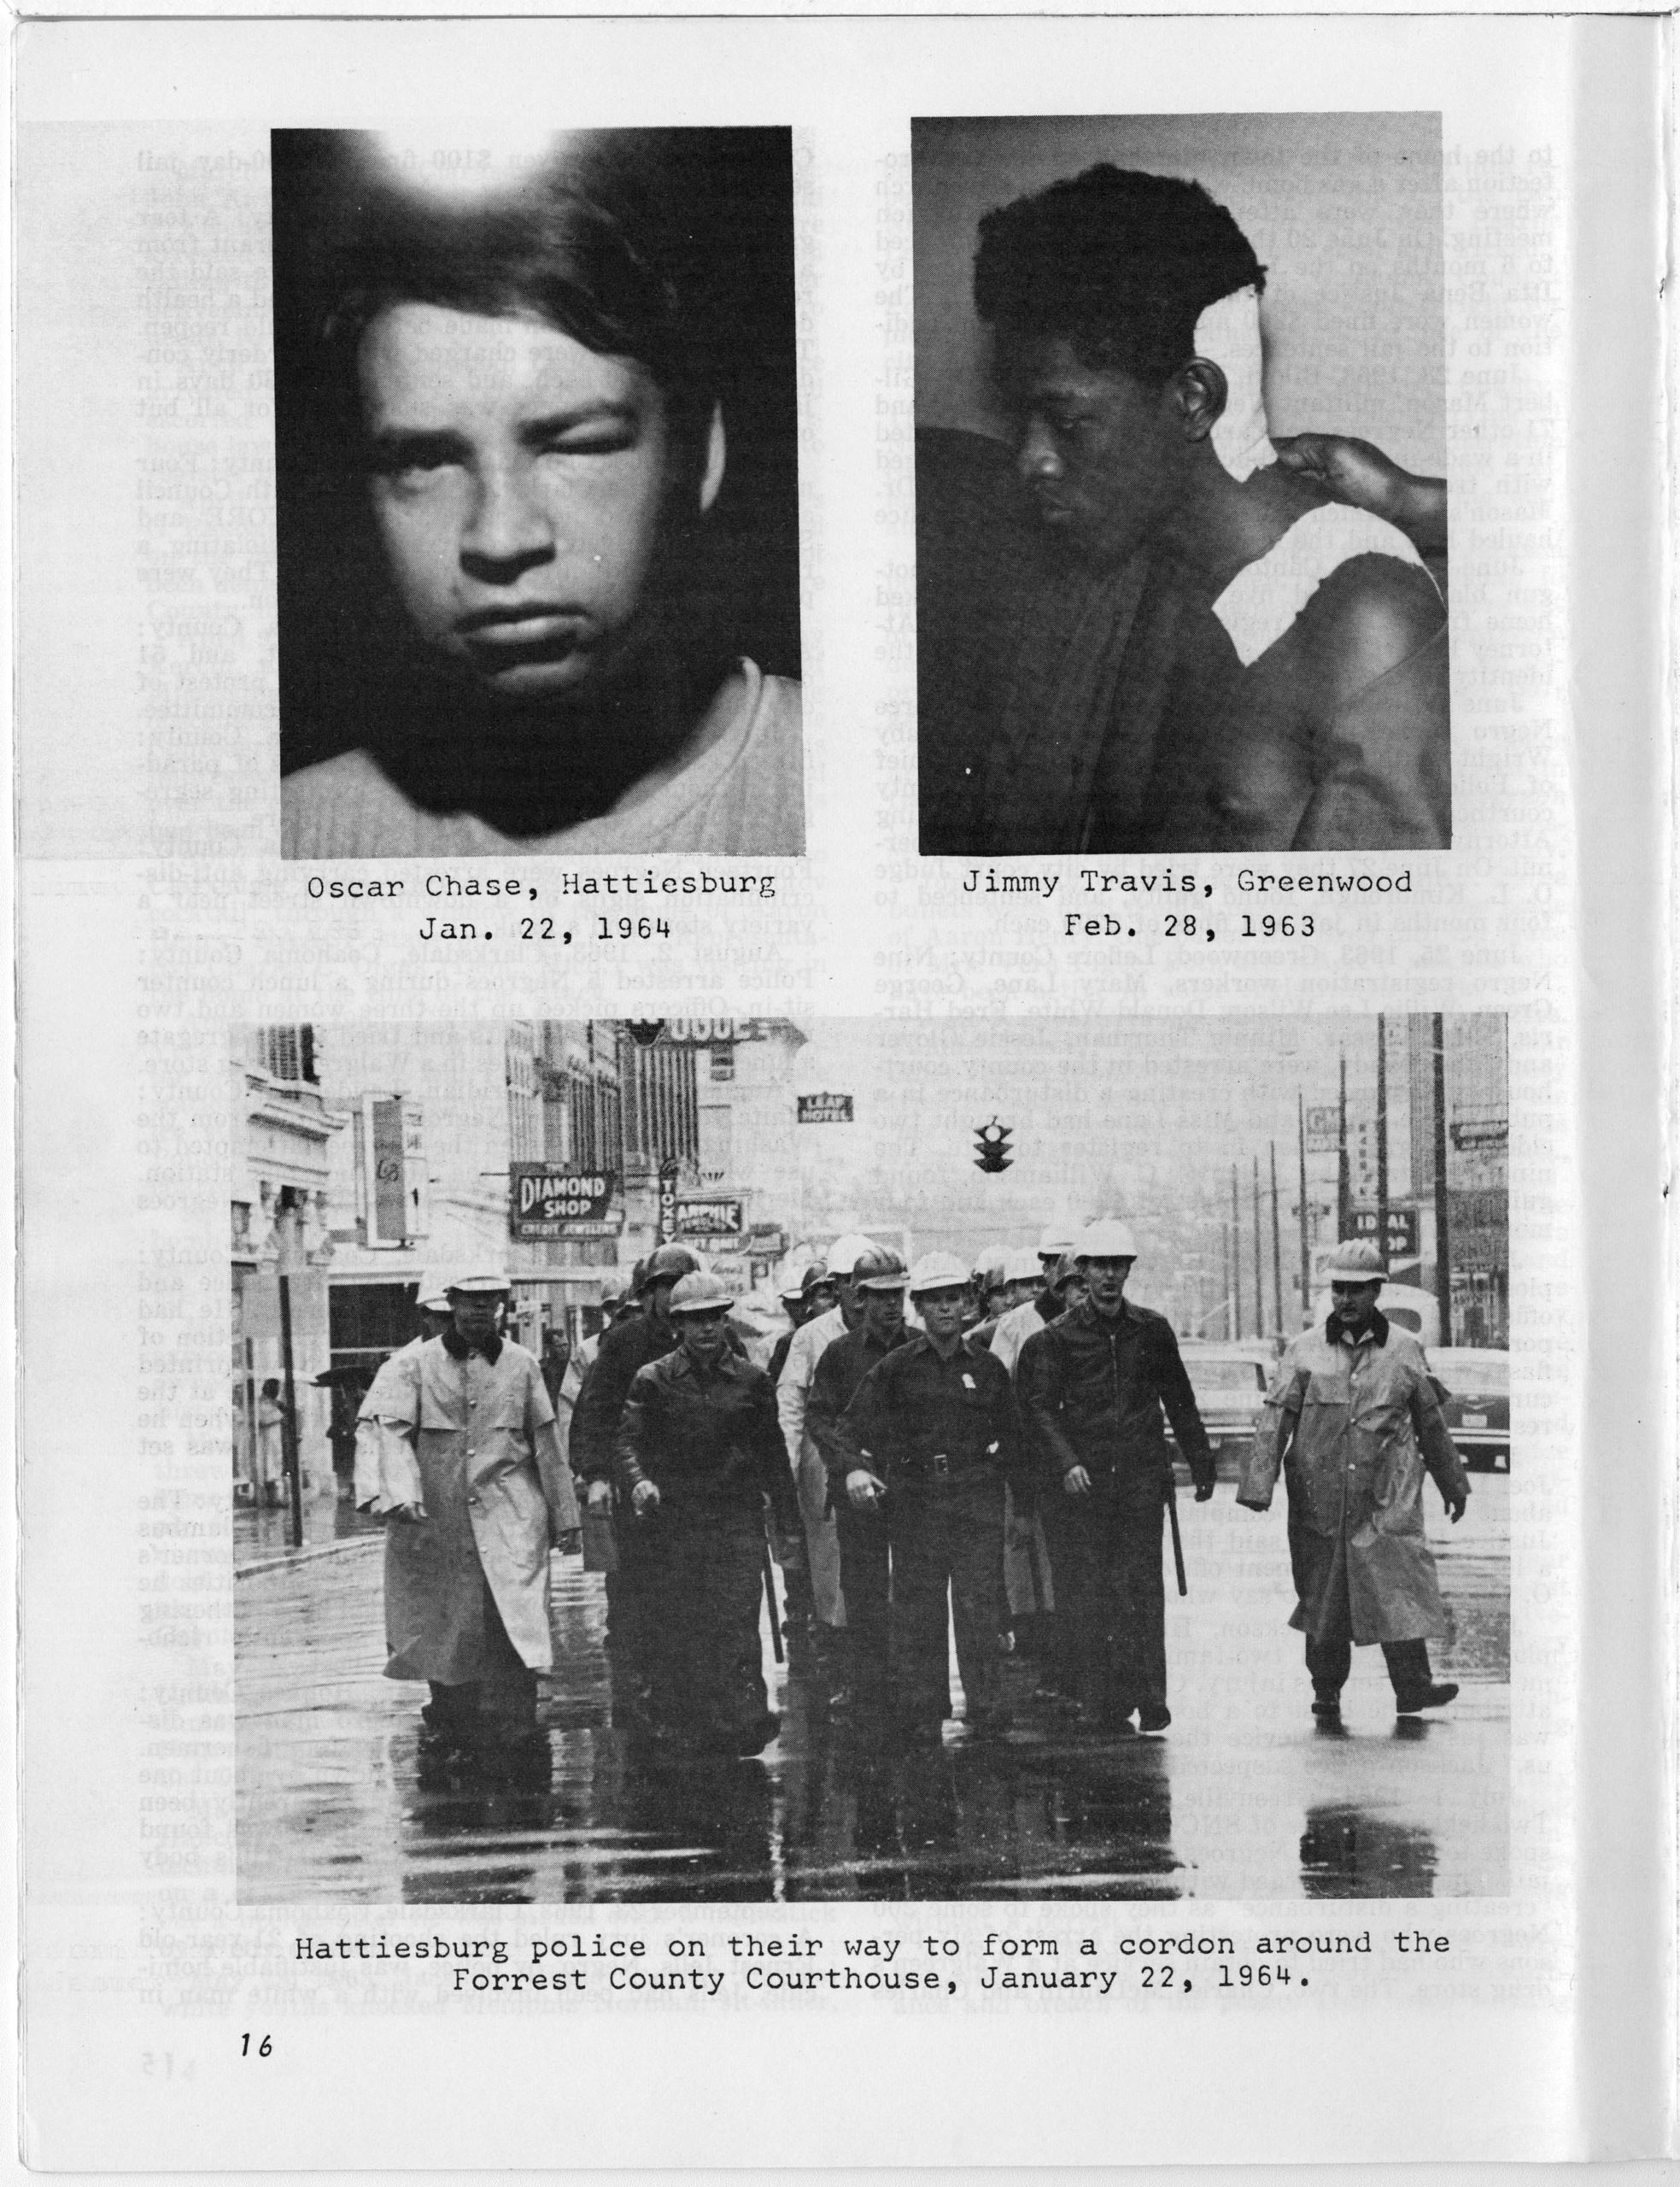 Mississippi 1963 SNCC Vertical File